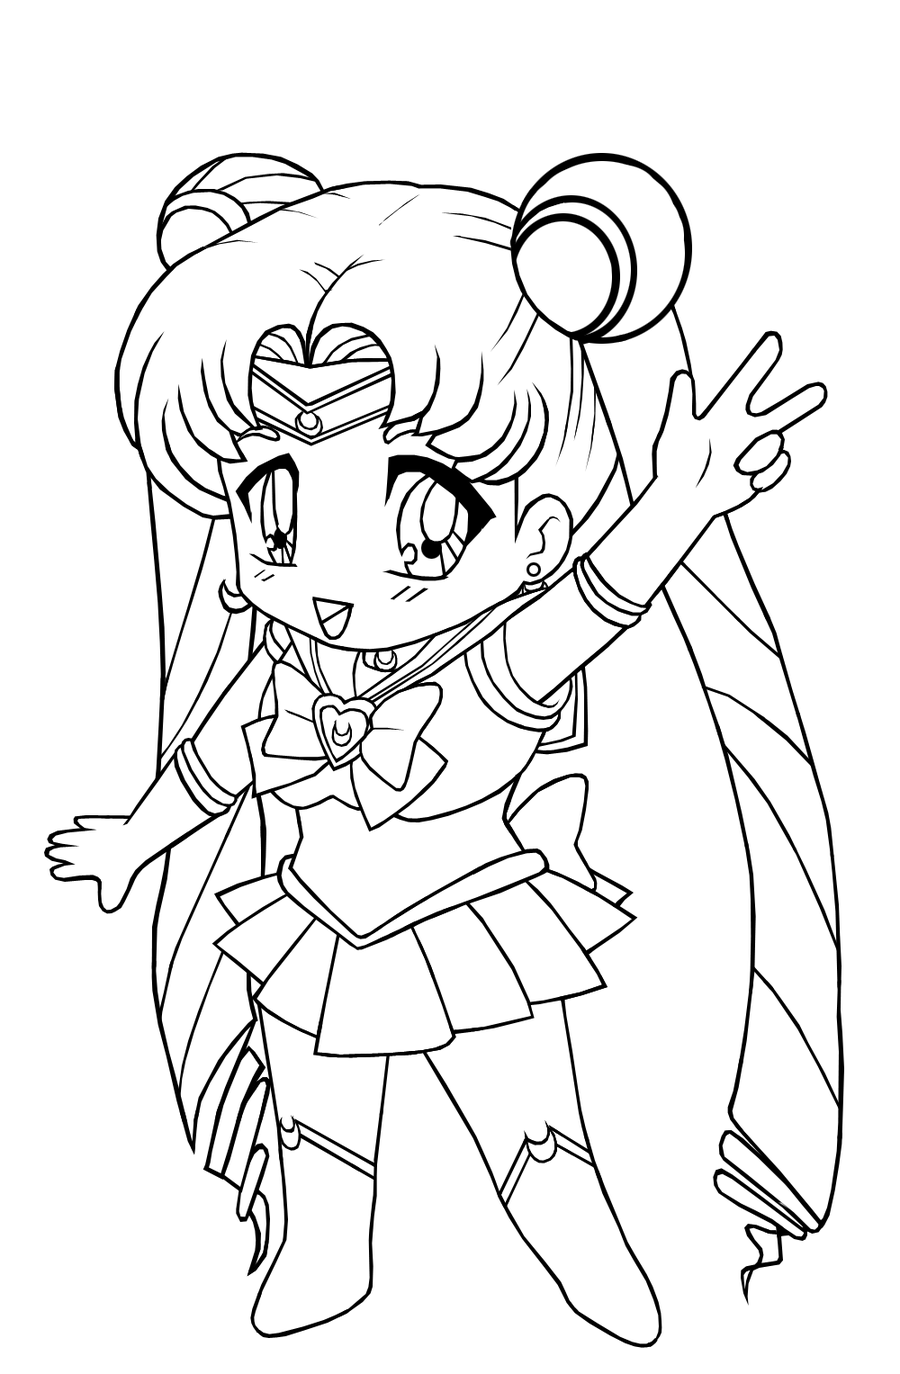 anime coloring pages to print anime coloring pages best coloring pages for kids coloring print pages to anime